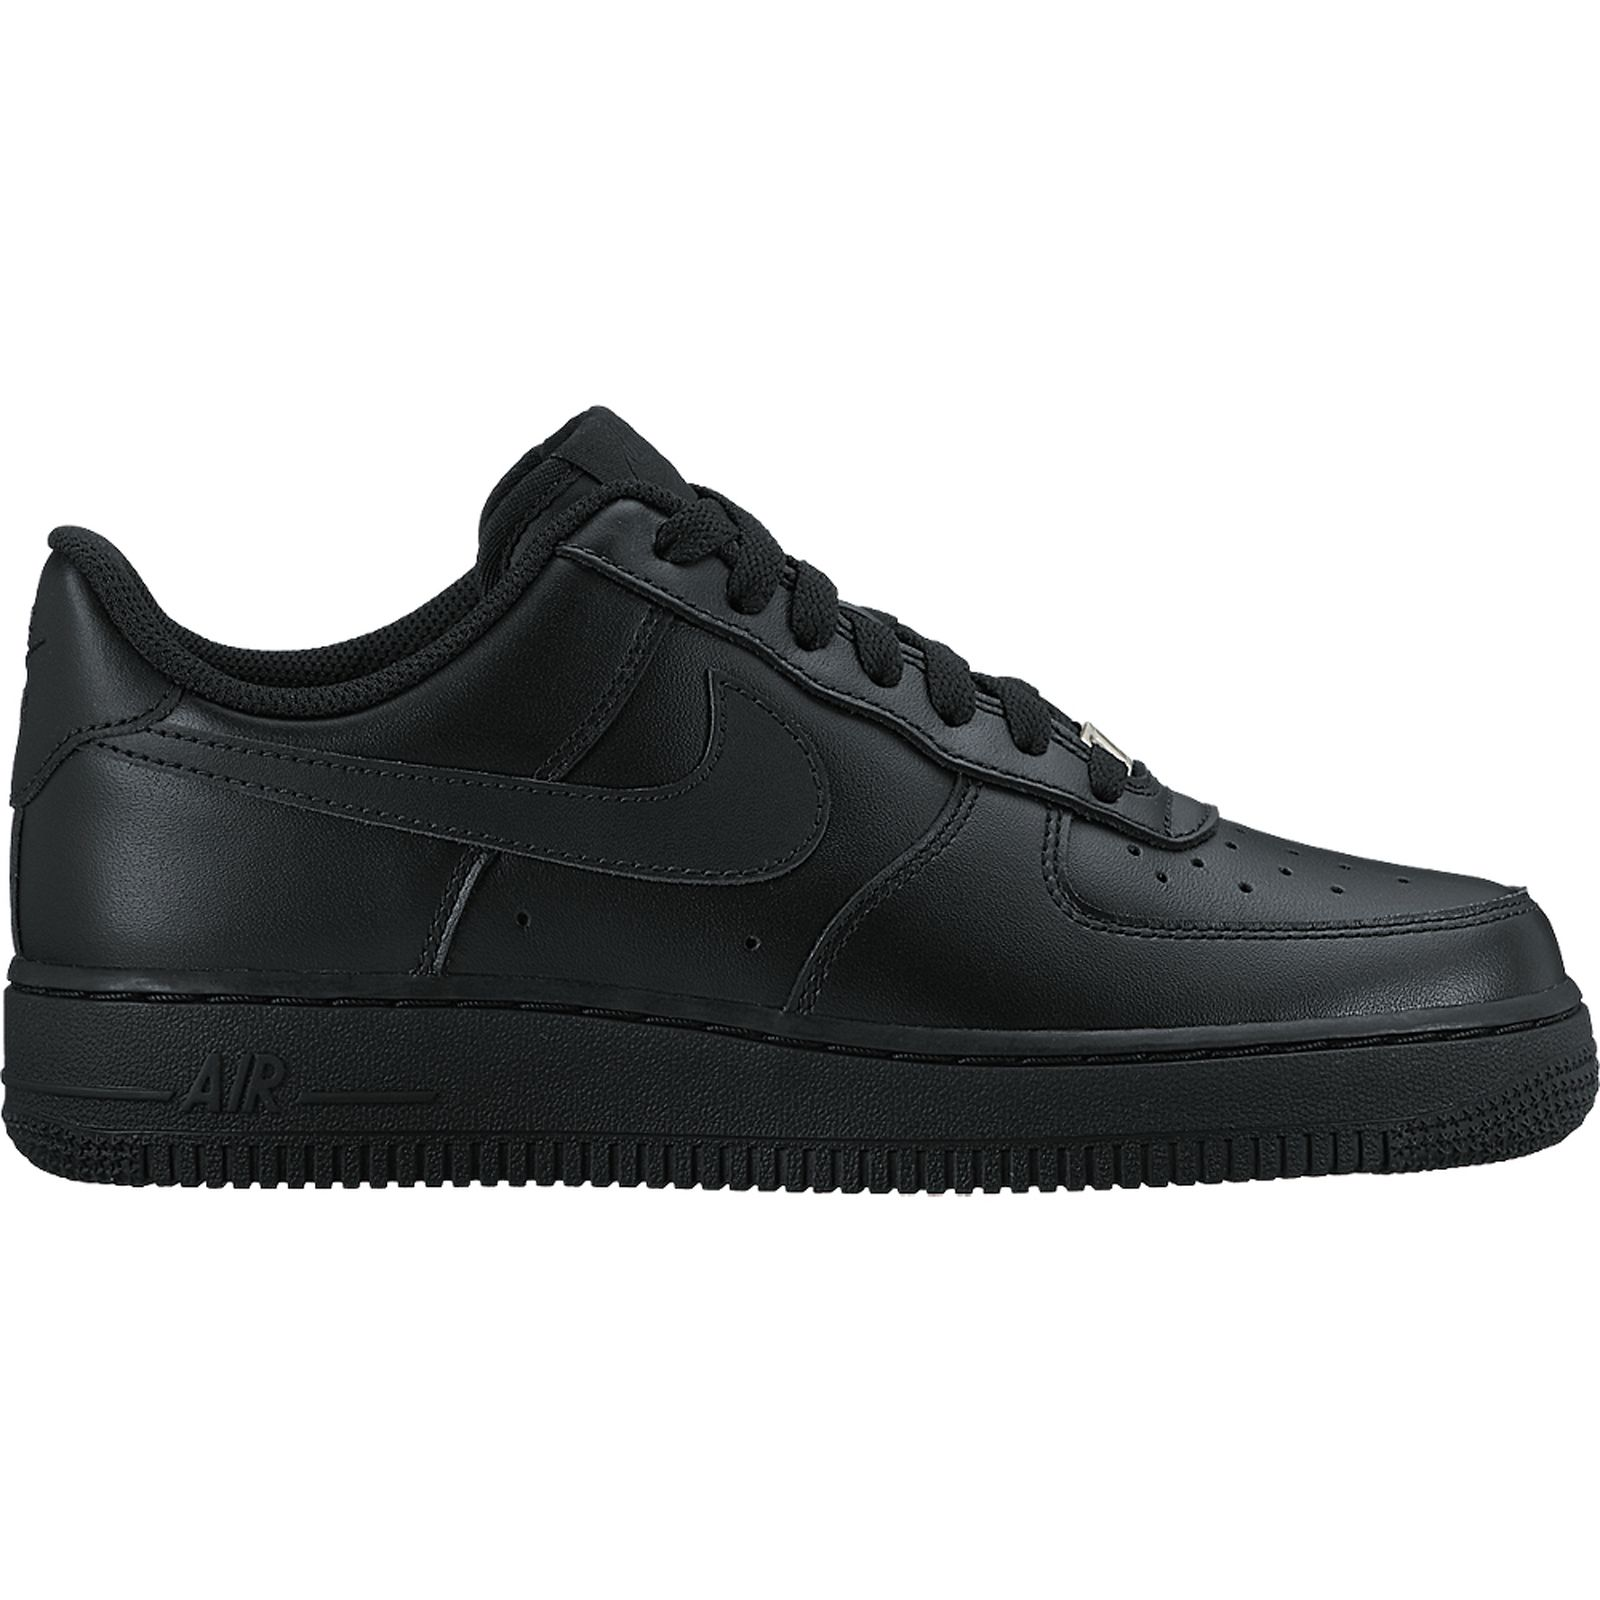 nike air force 1 turnschuhe sneakers schwarz brandalley. Black Bedroom Furniture Sets. Home Design Ideas